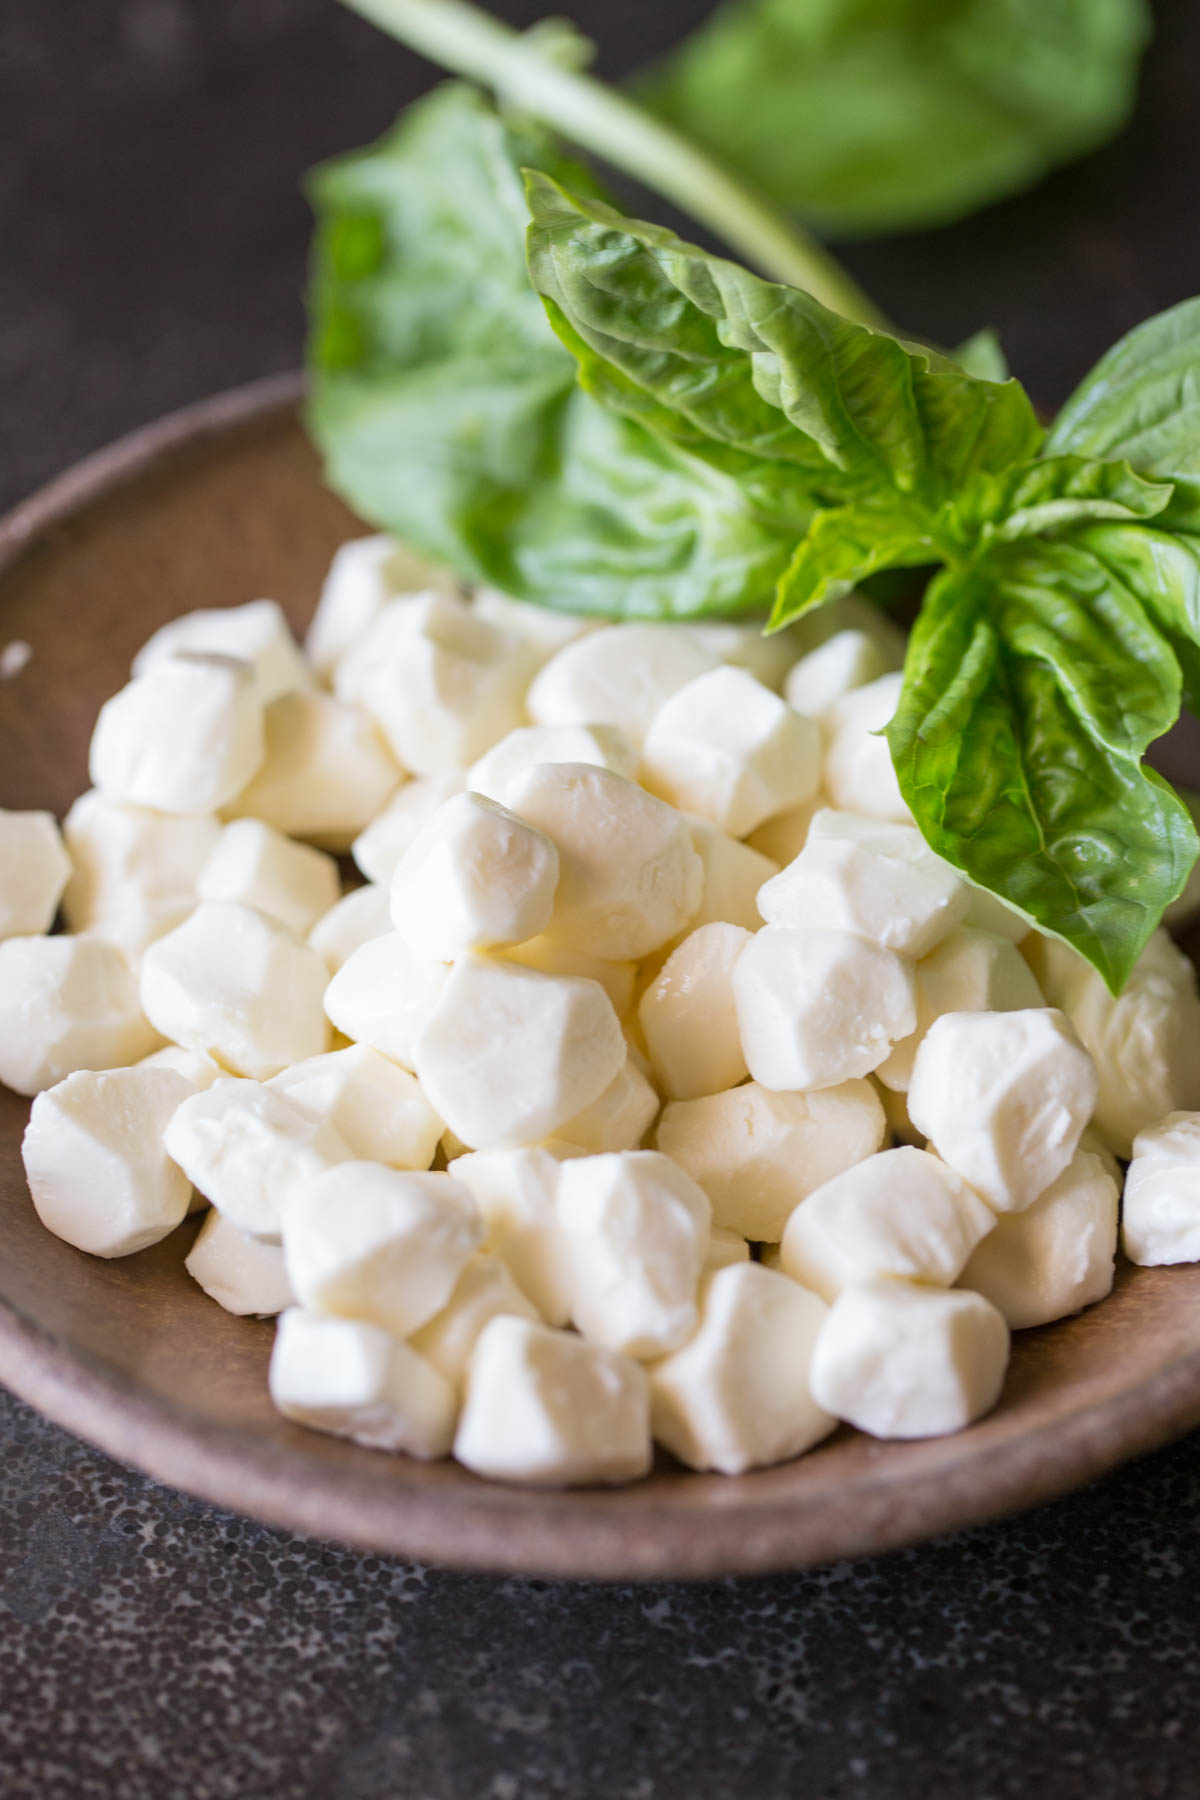 A bowl of fresh mozzarella pearls with some fresh basil for the Pesto Chicken Skillet.